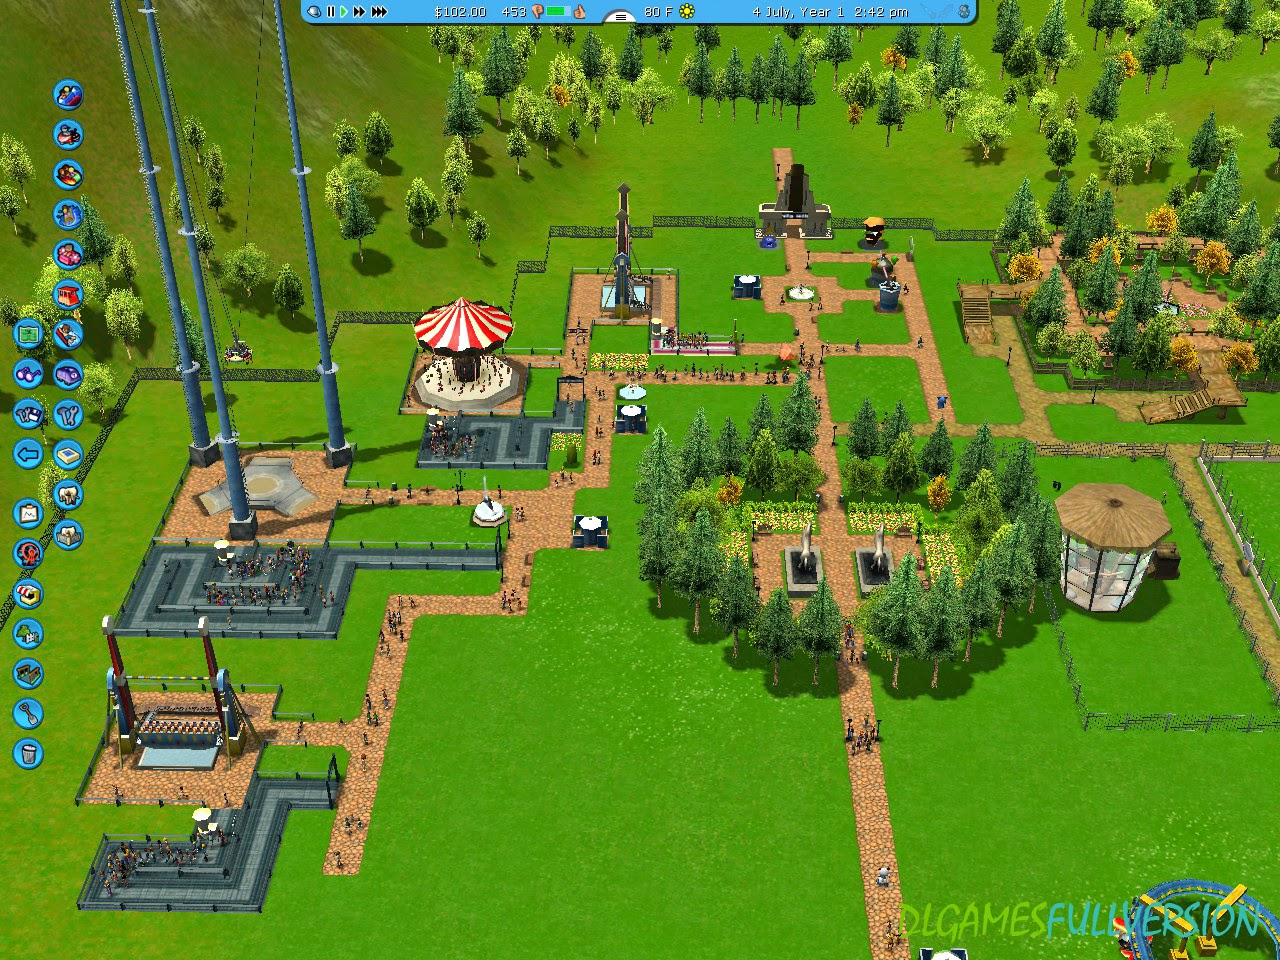 Rollercoaster tycoon 3 soaked wild patch : legmoohe